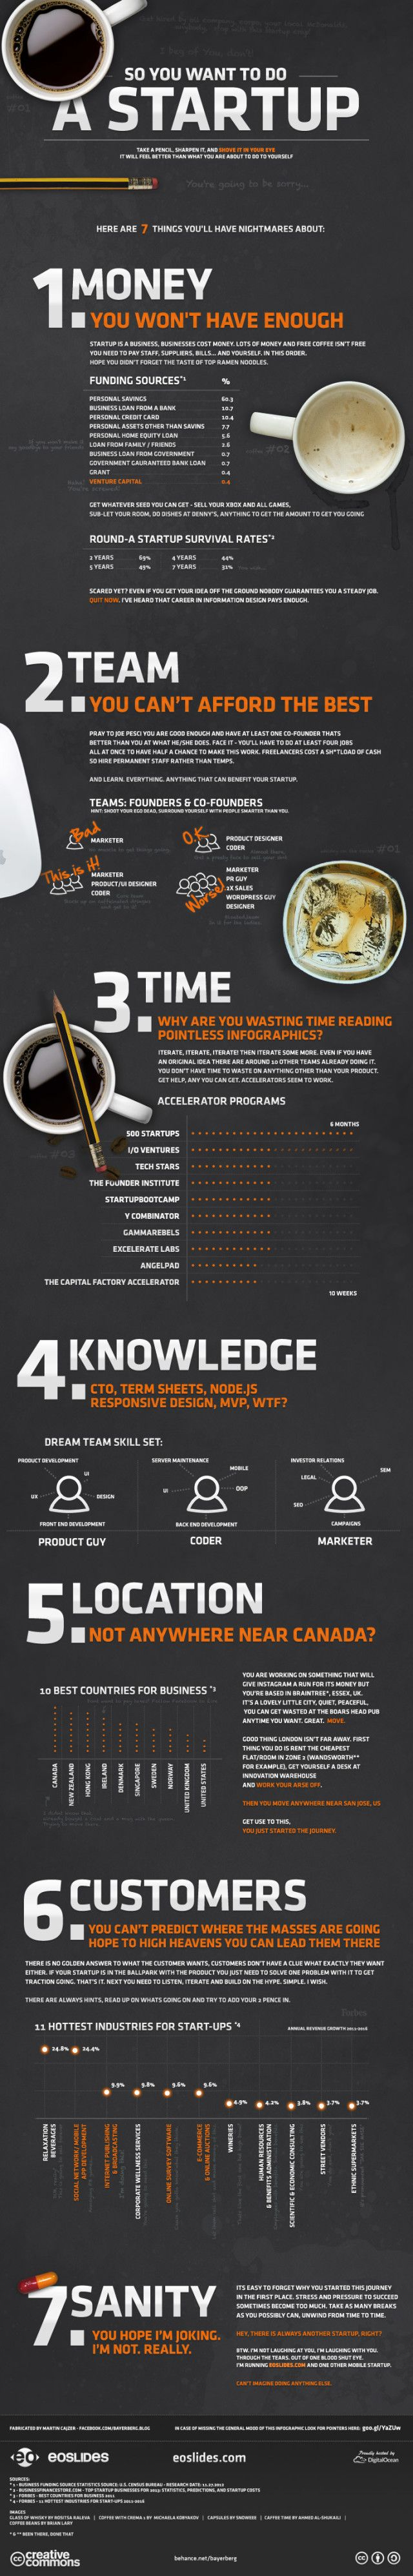 Startups: Are they worth it? [Infographic] Don't let the information scare you because if Steve Jobs had been too scared to start Apple we wouldn't have some of the best technology we have today. This infographic should be used as a warning and a guide to help you prepare for your own startup. This will help you decide if this idea is truly something you want to move forward with.